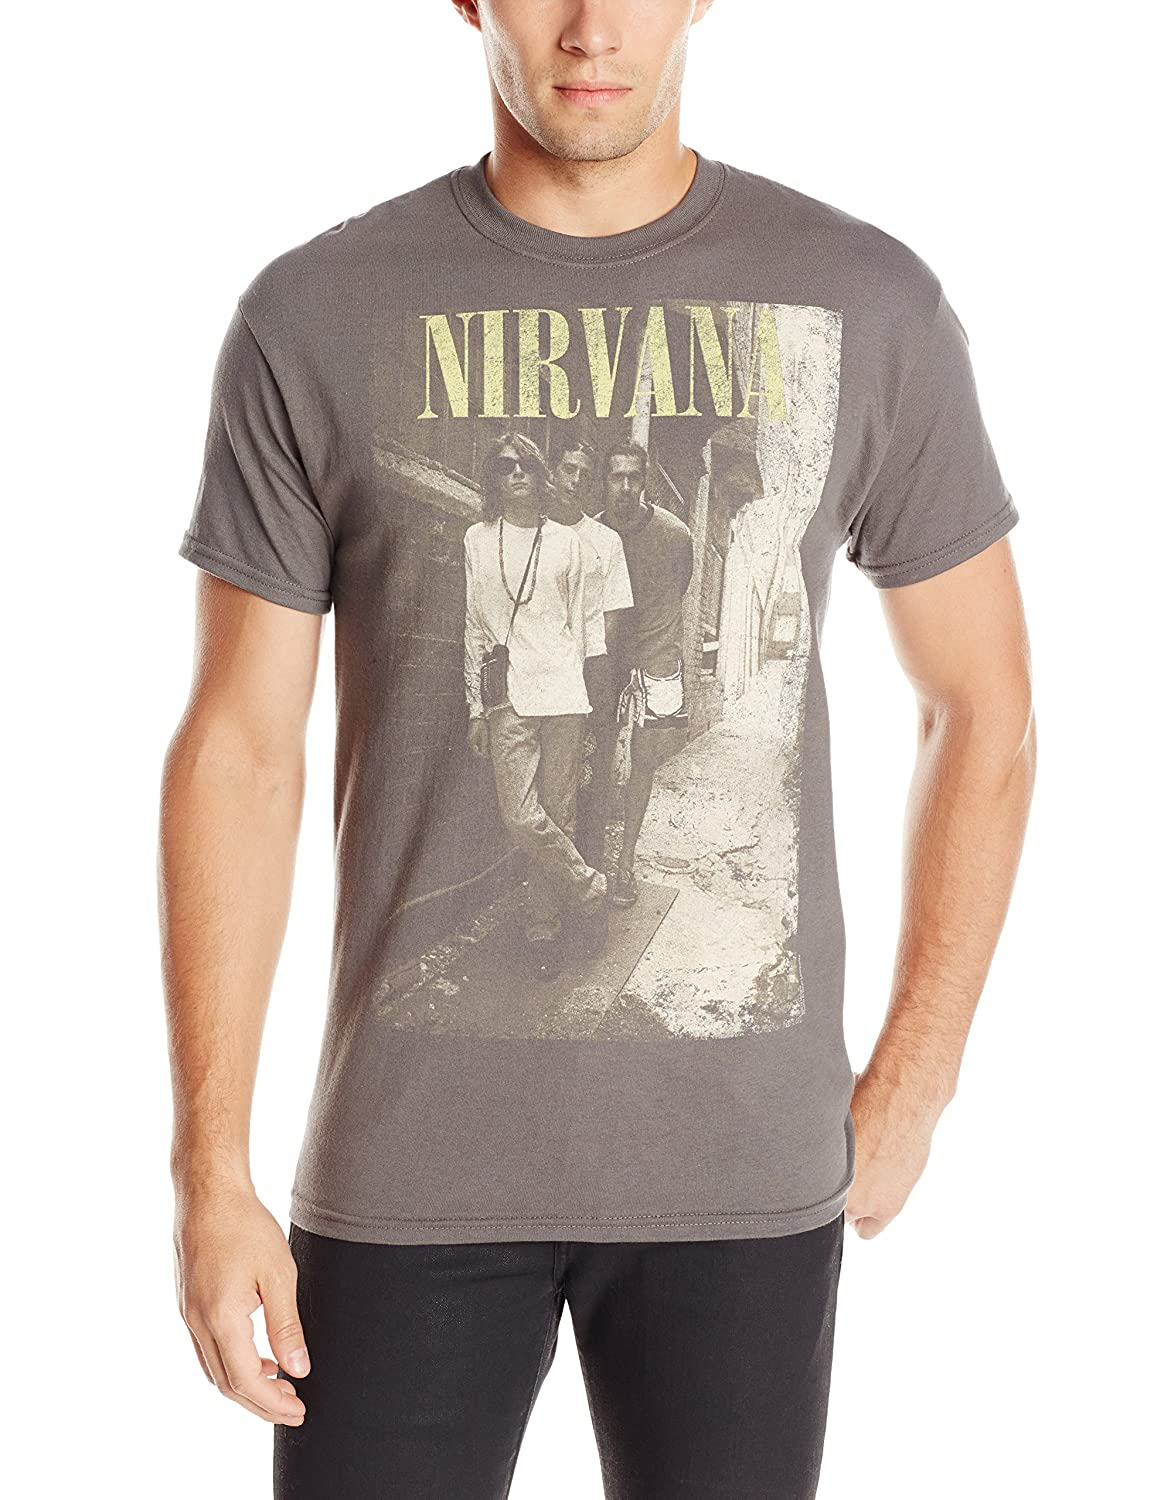 FEA Men's Nirvana Brick Wall Band Photo T-Shirt NV1636